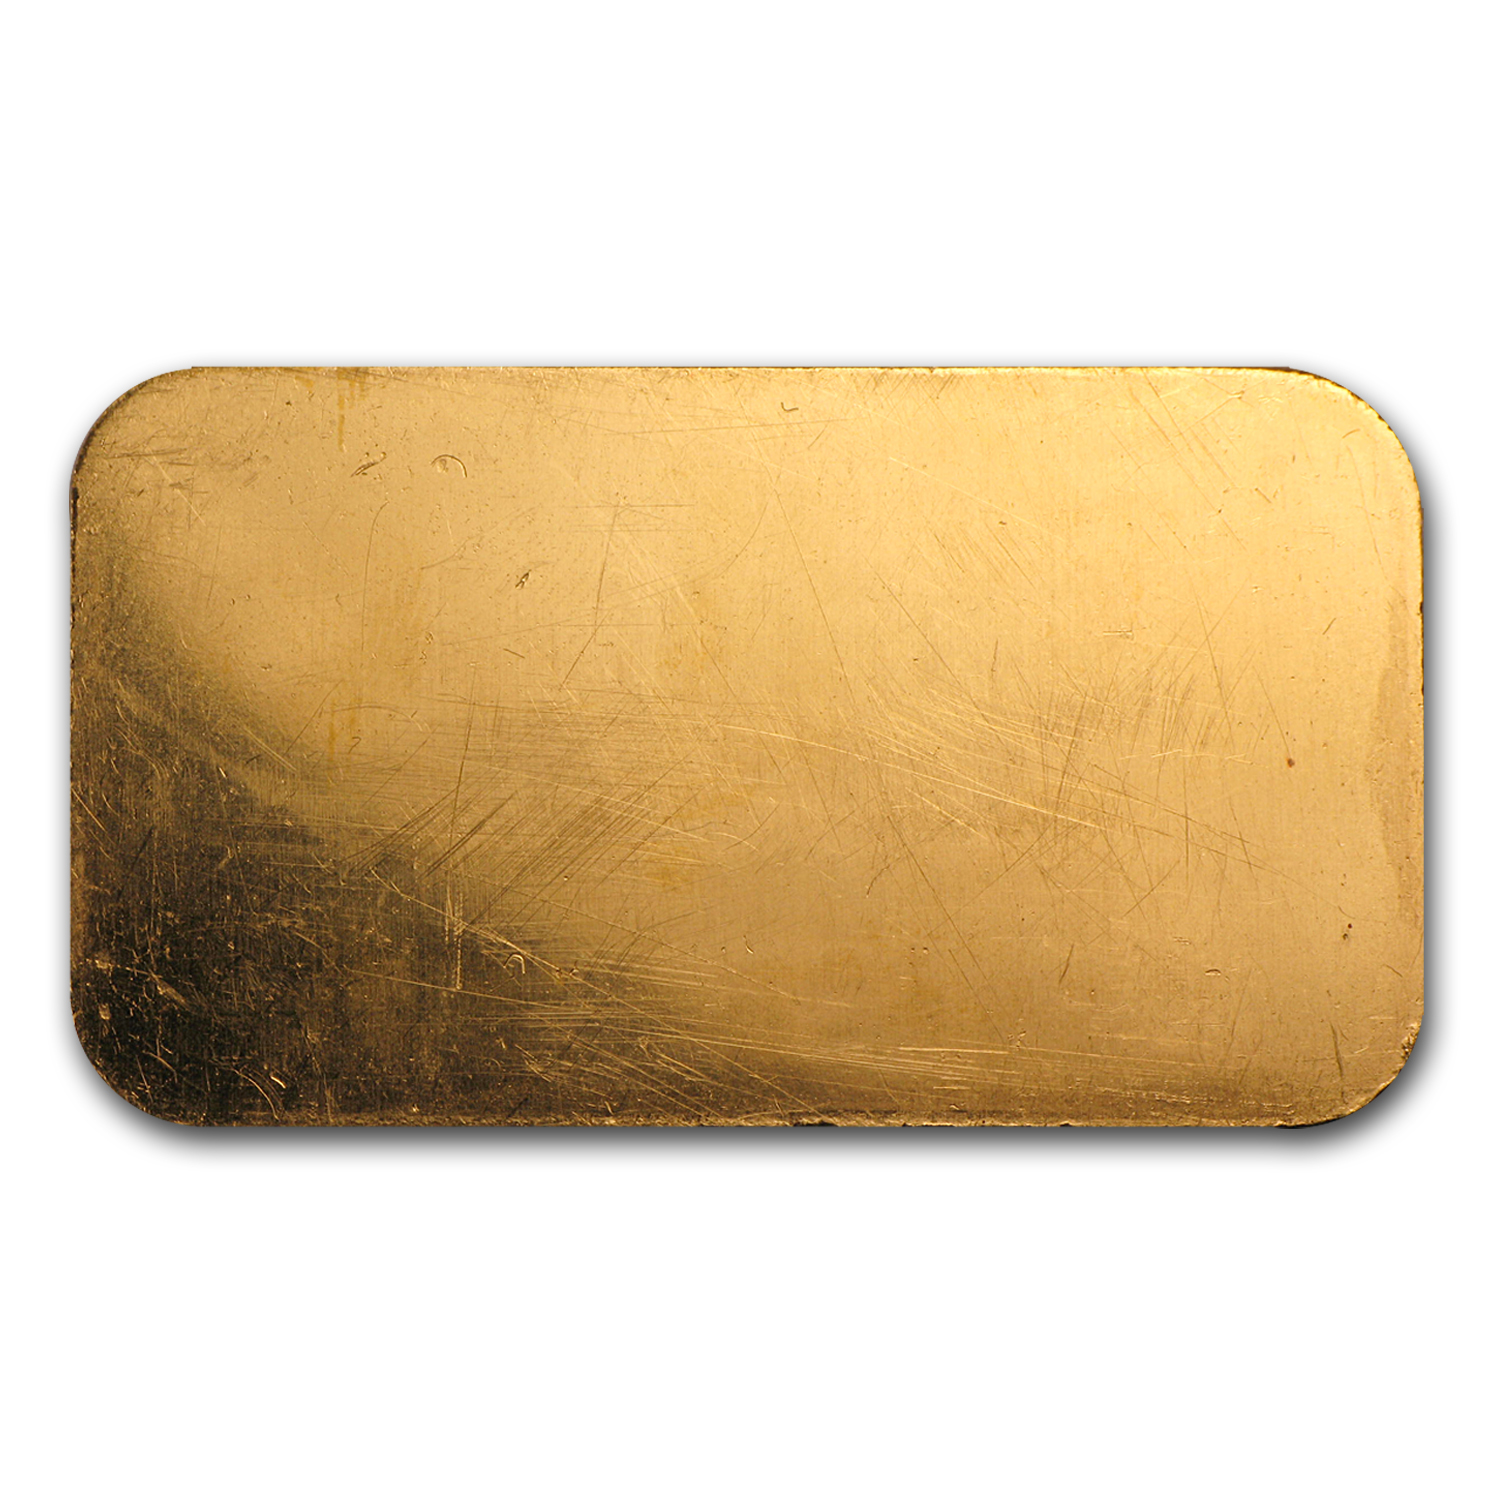 1 oz Gold Bars - Johnson Matthey & Mallory